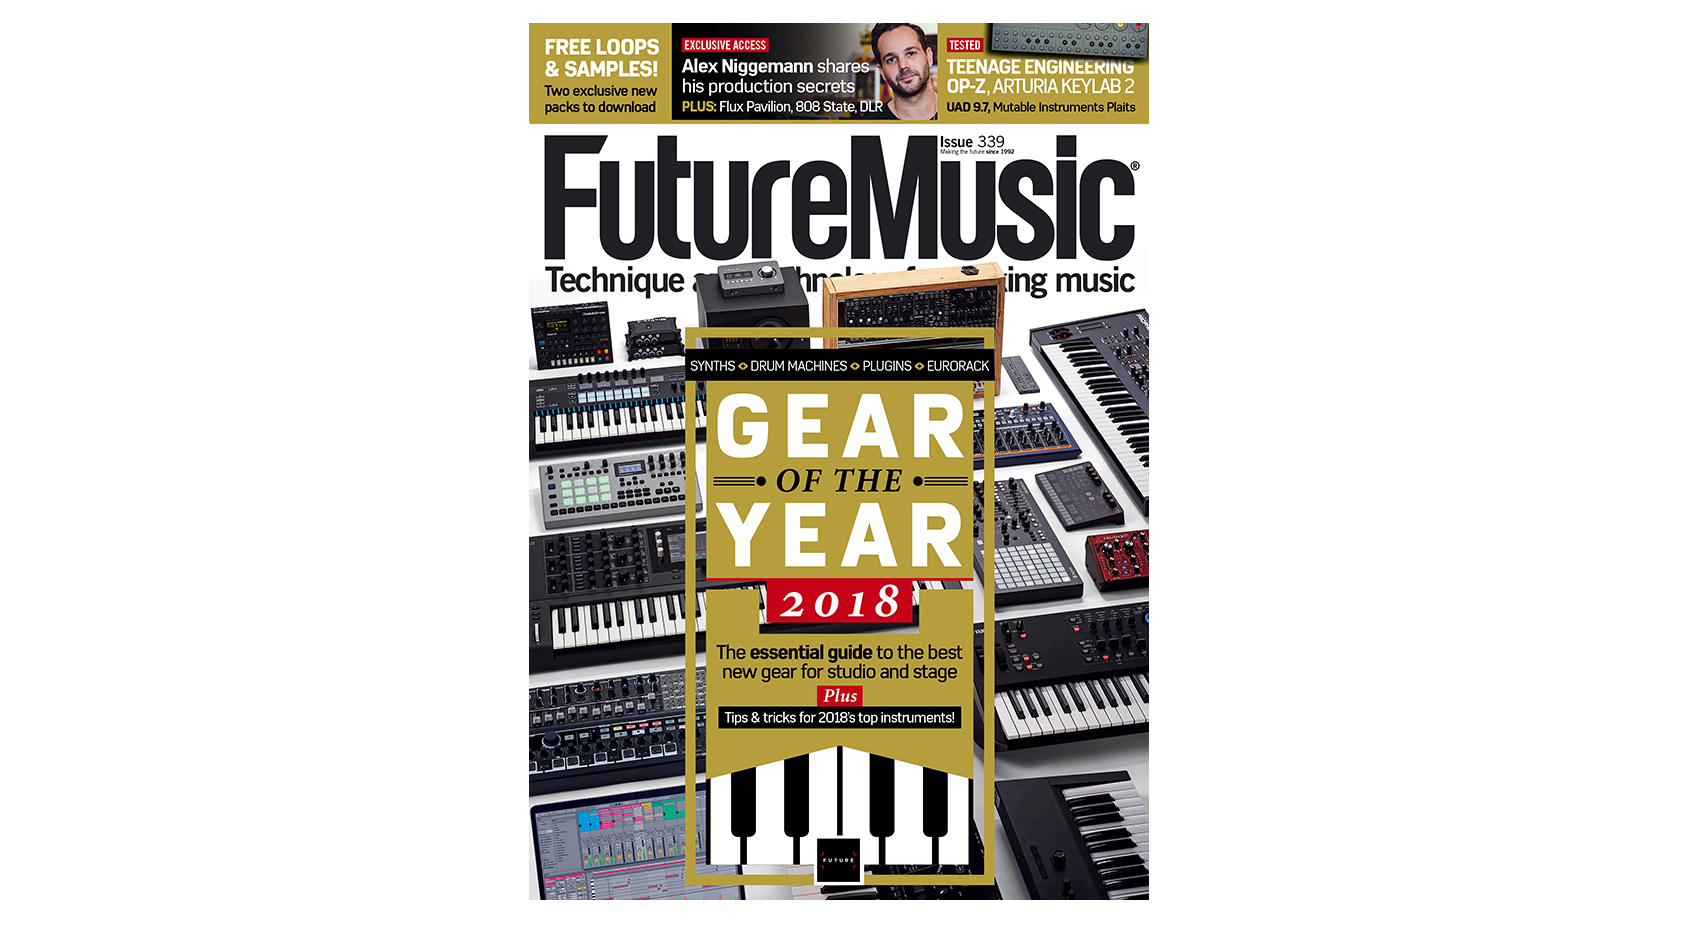 Issue 339 of Future Music is on sale now | MusicRadar